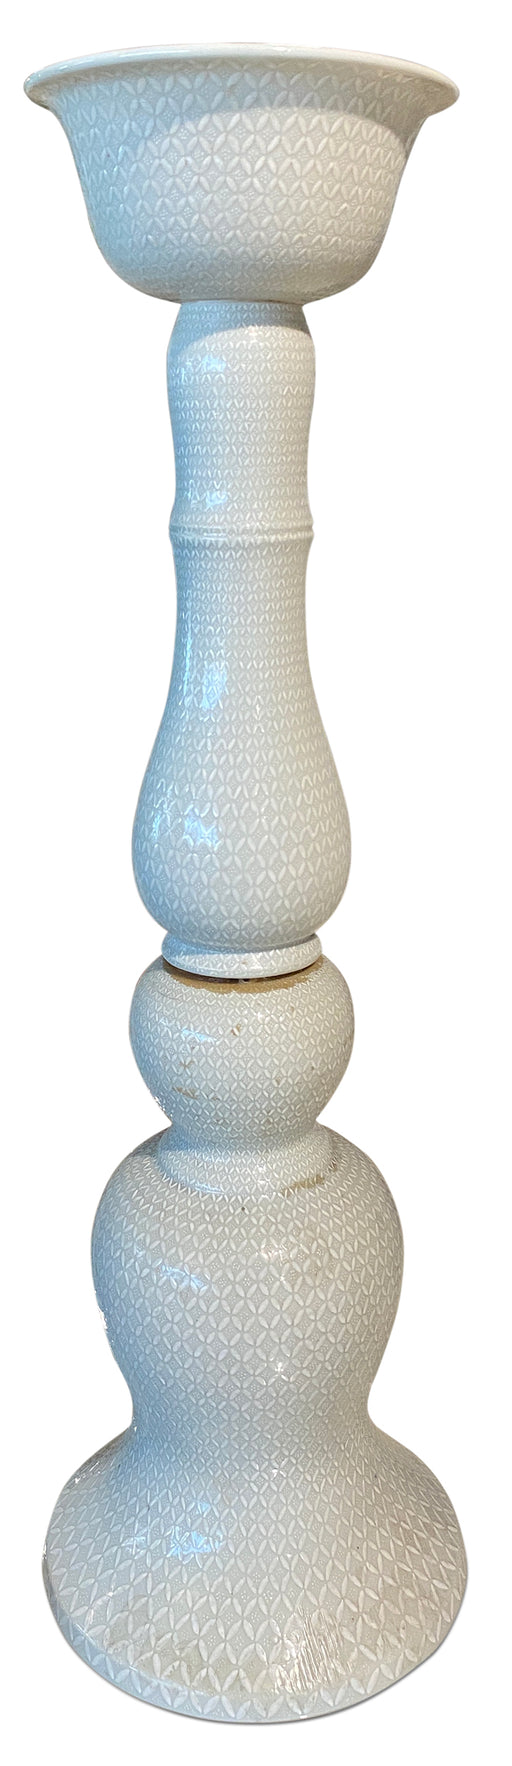 Jumbo Ceramic Candle Holder